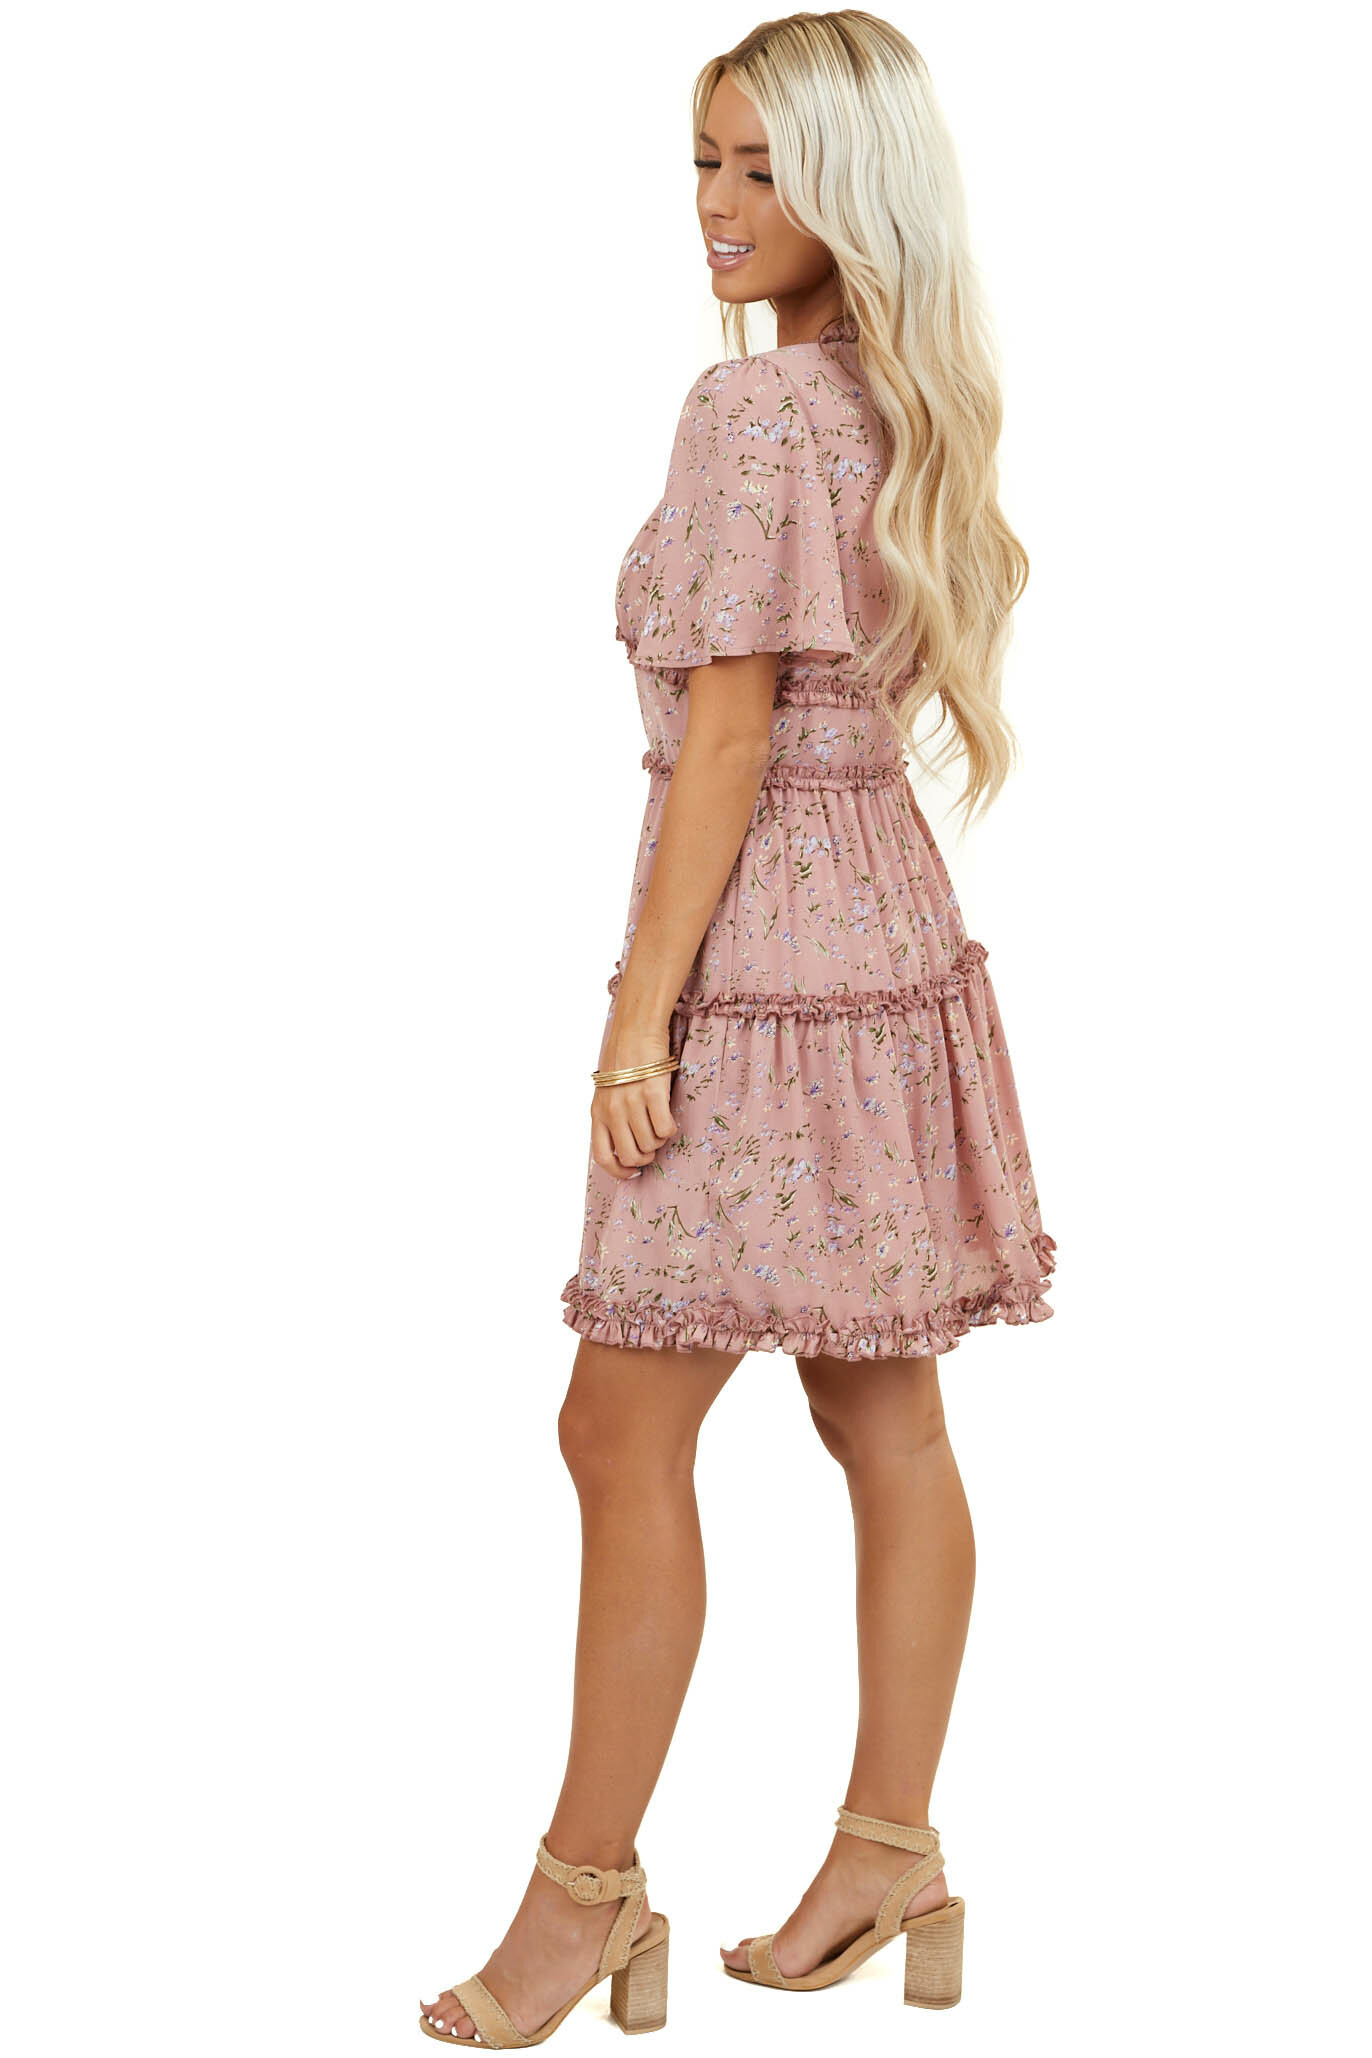 Dusty Rose Floral Print Short Tiered Dress with Ruffles